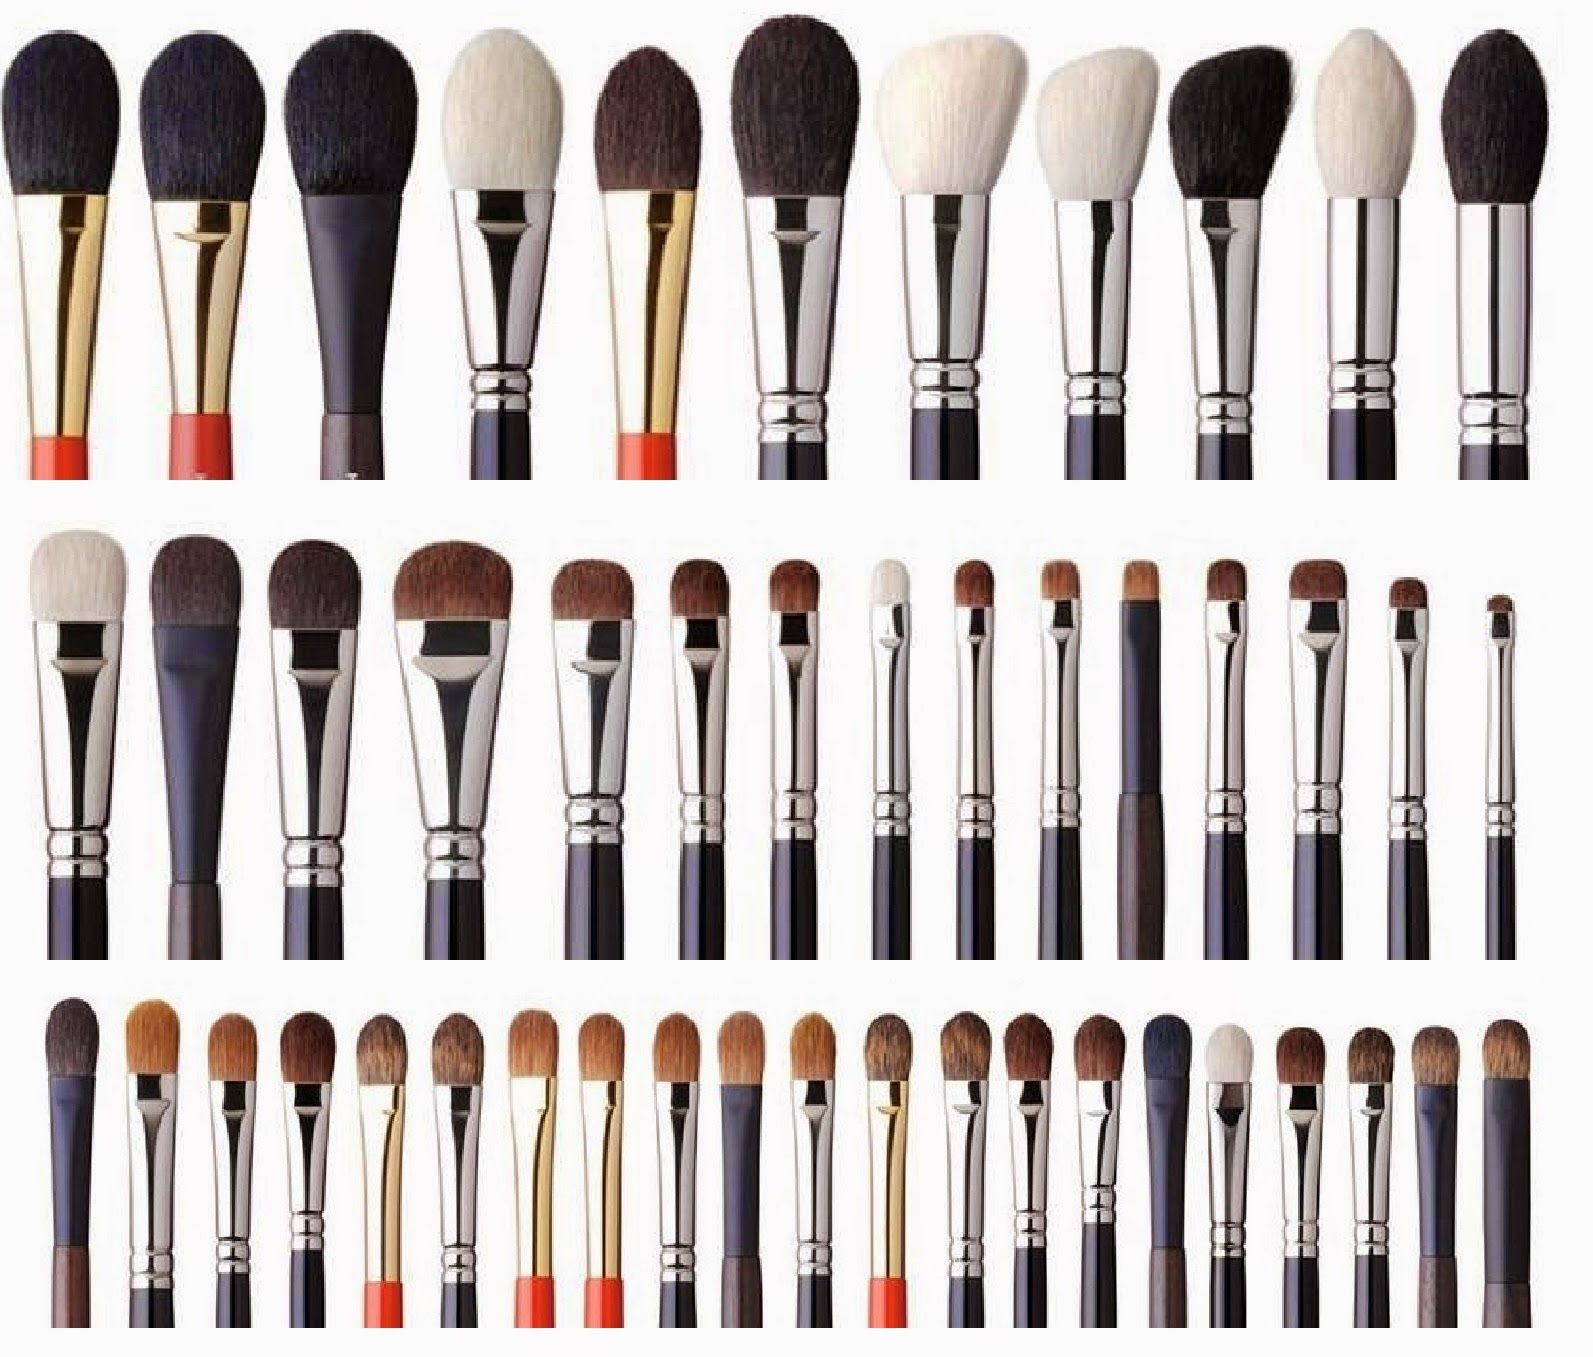 VONIRA BEAUTY LUXURY MAKEUP BRUSHES SHOPPING SERVICE FROM